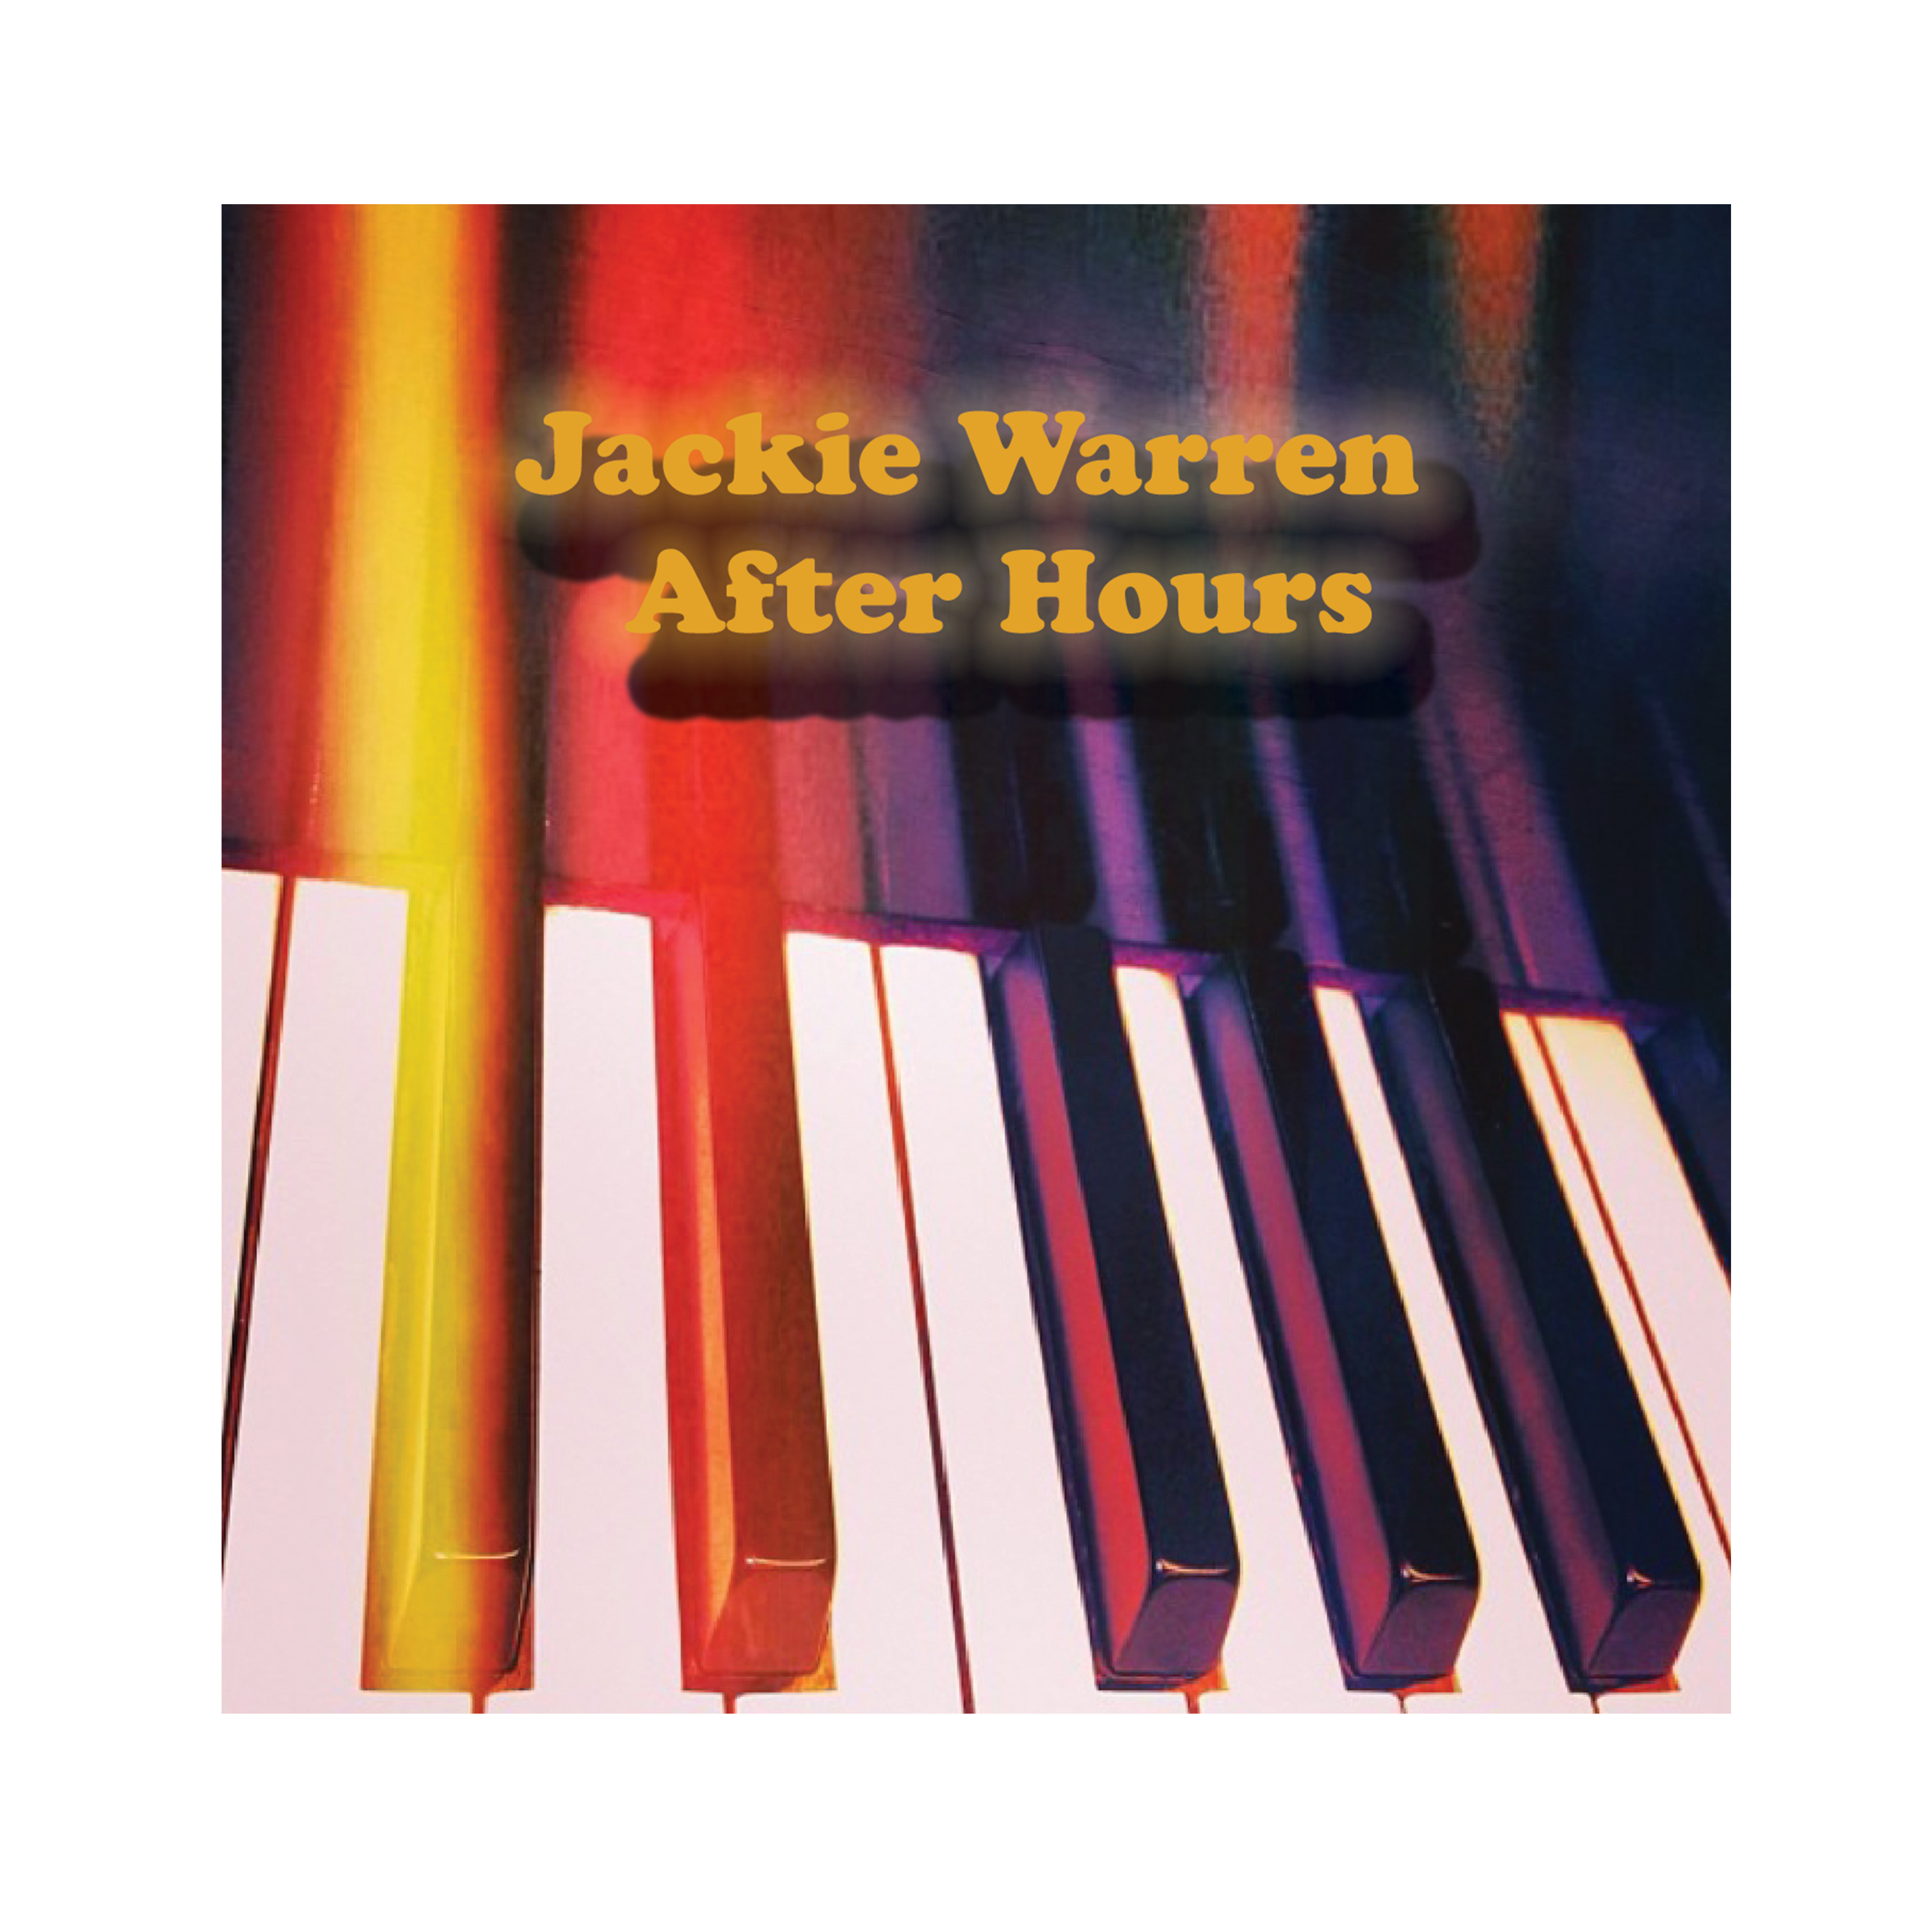 After Hours by Jackie Warren CD 00004